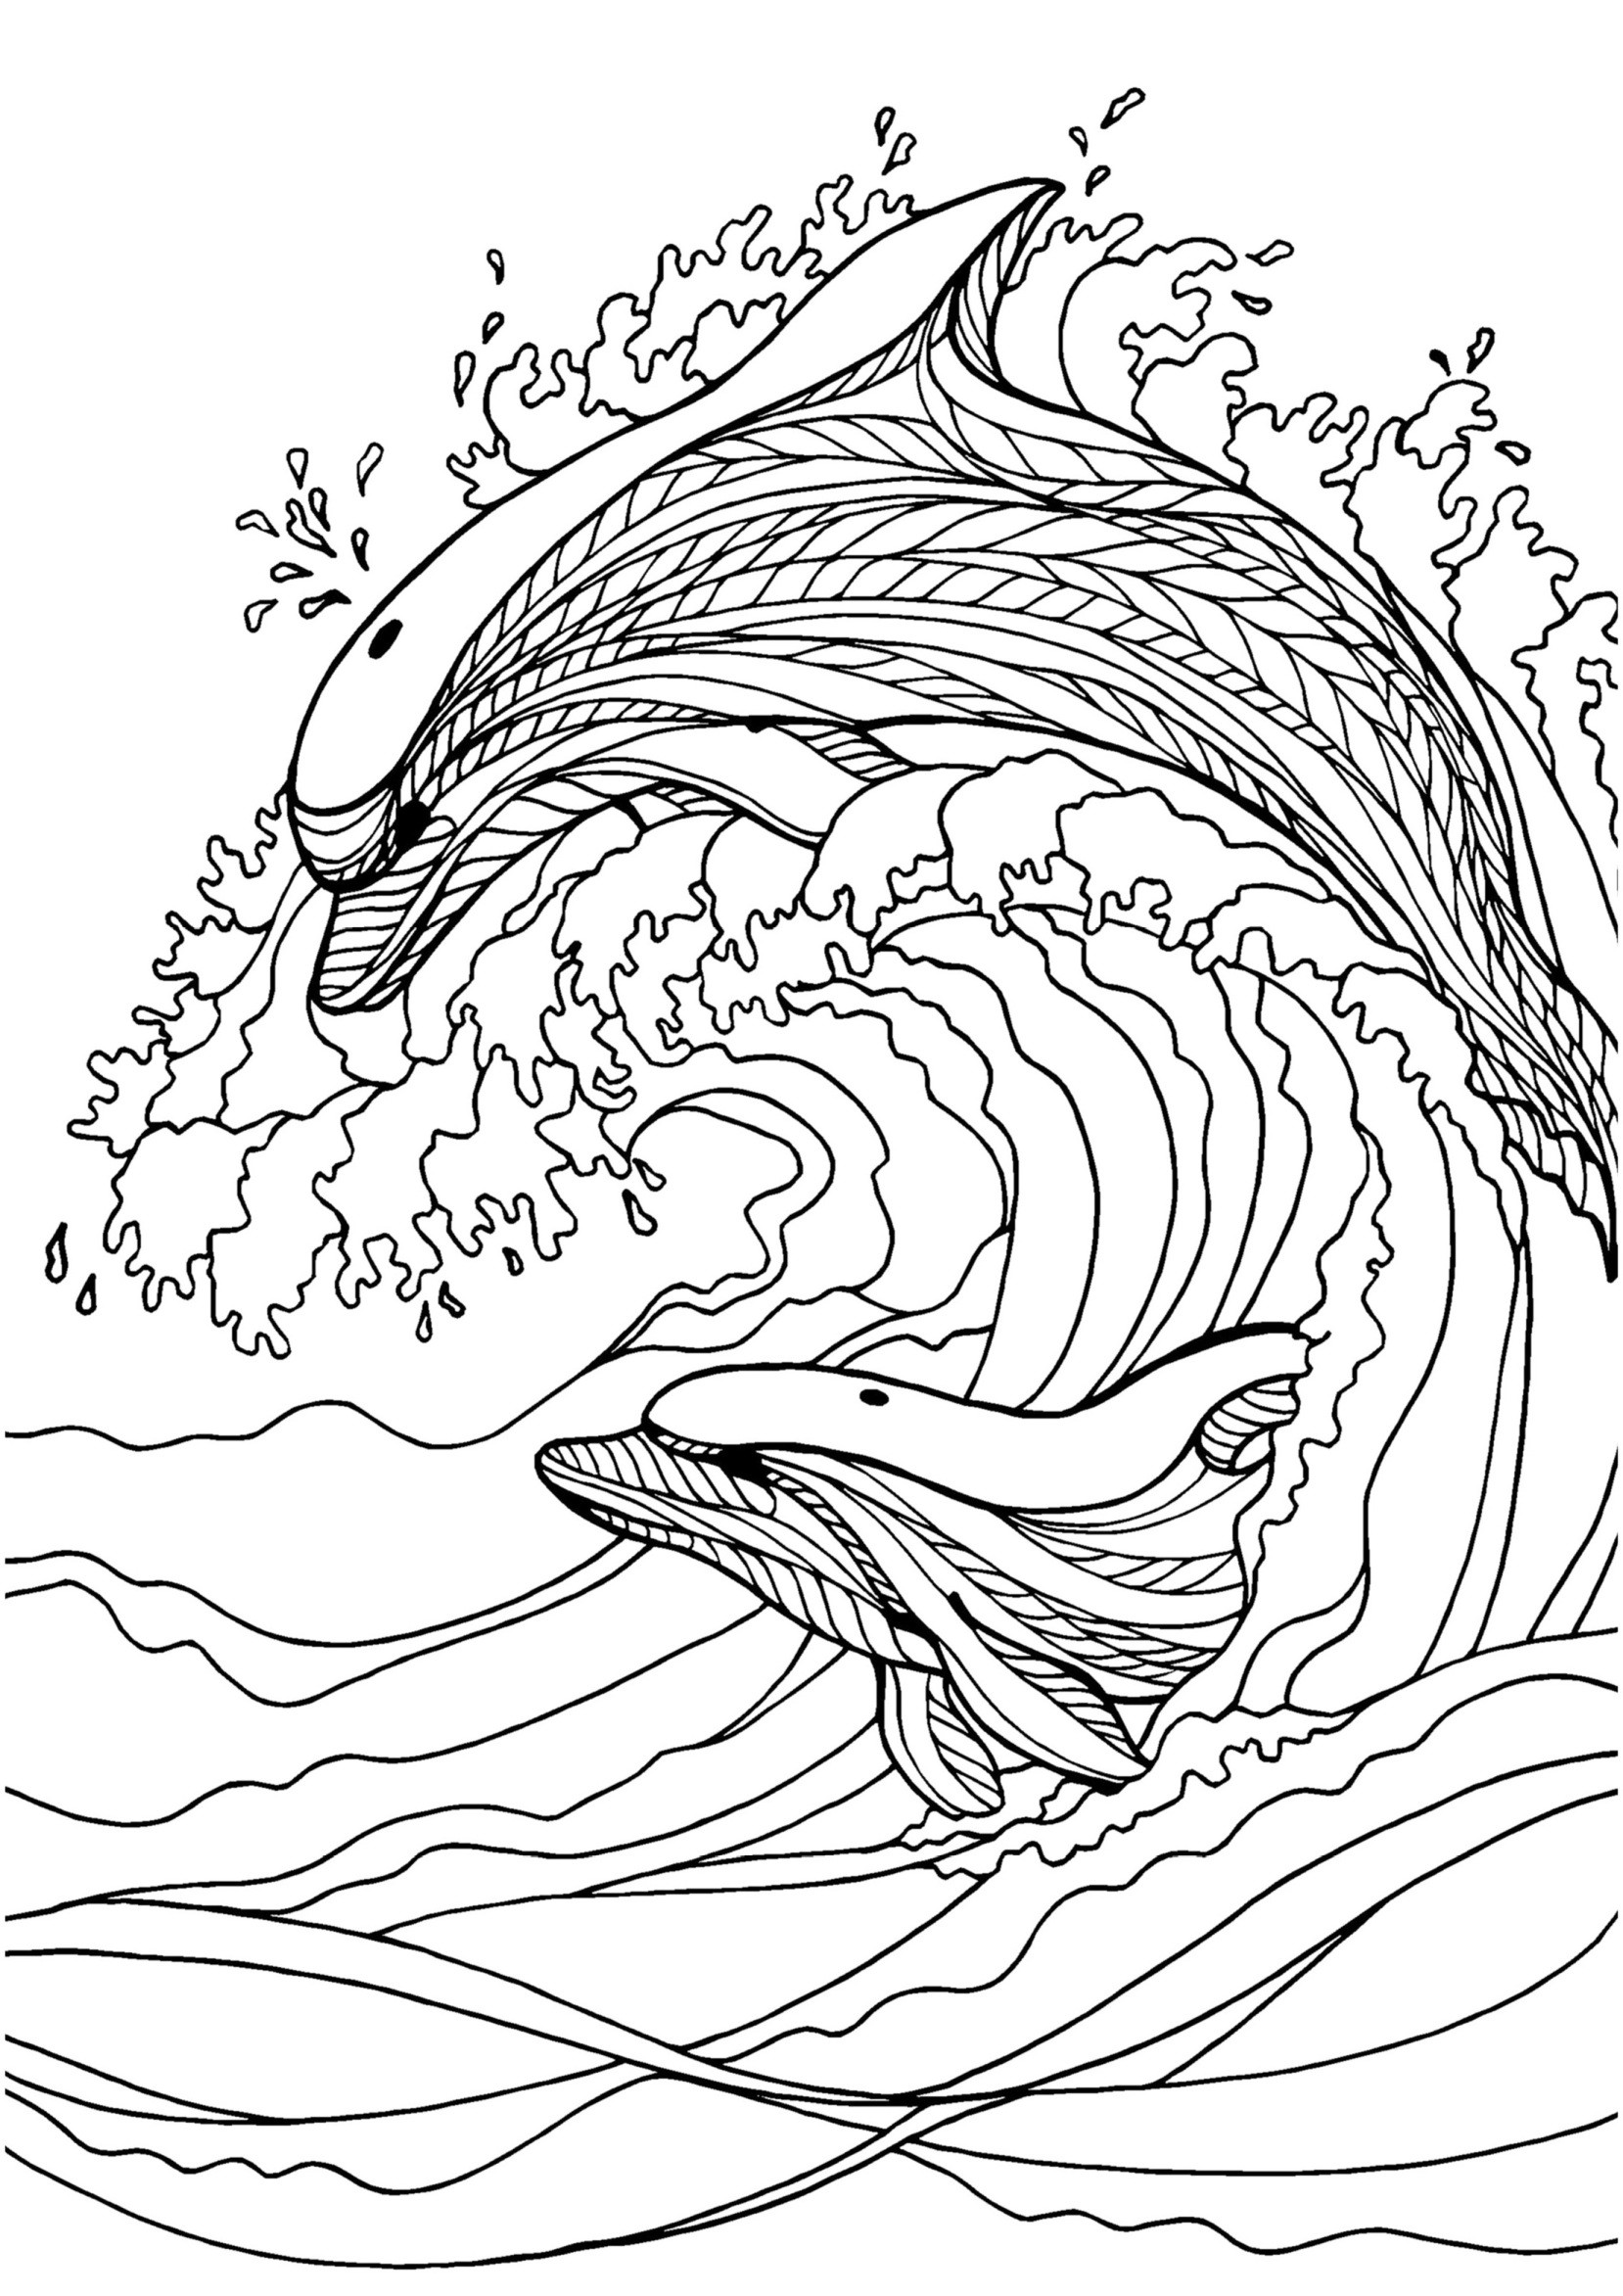 dolphins pictures to color free printable dolphin coloring pages for kids dolphins to color pictures